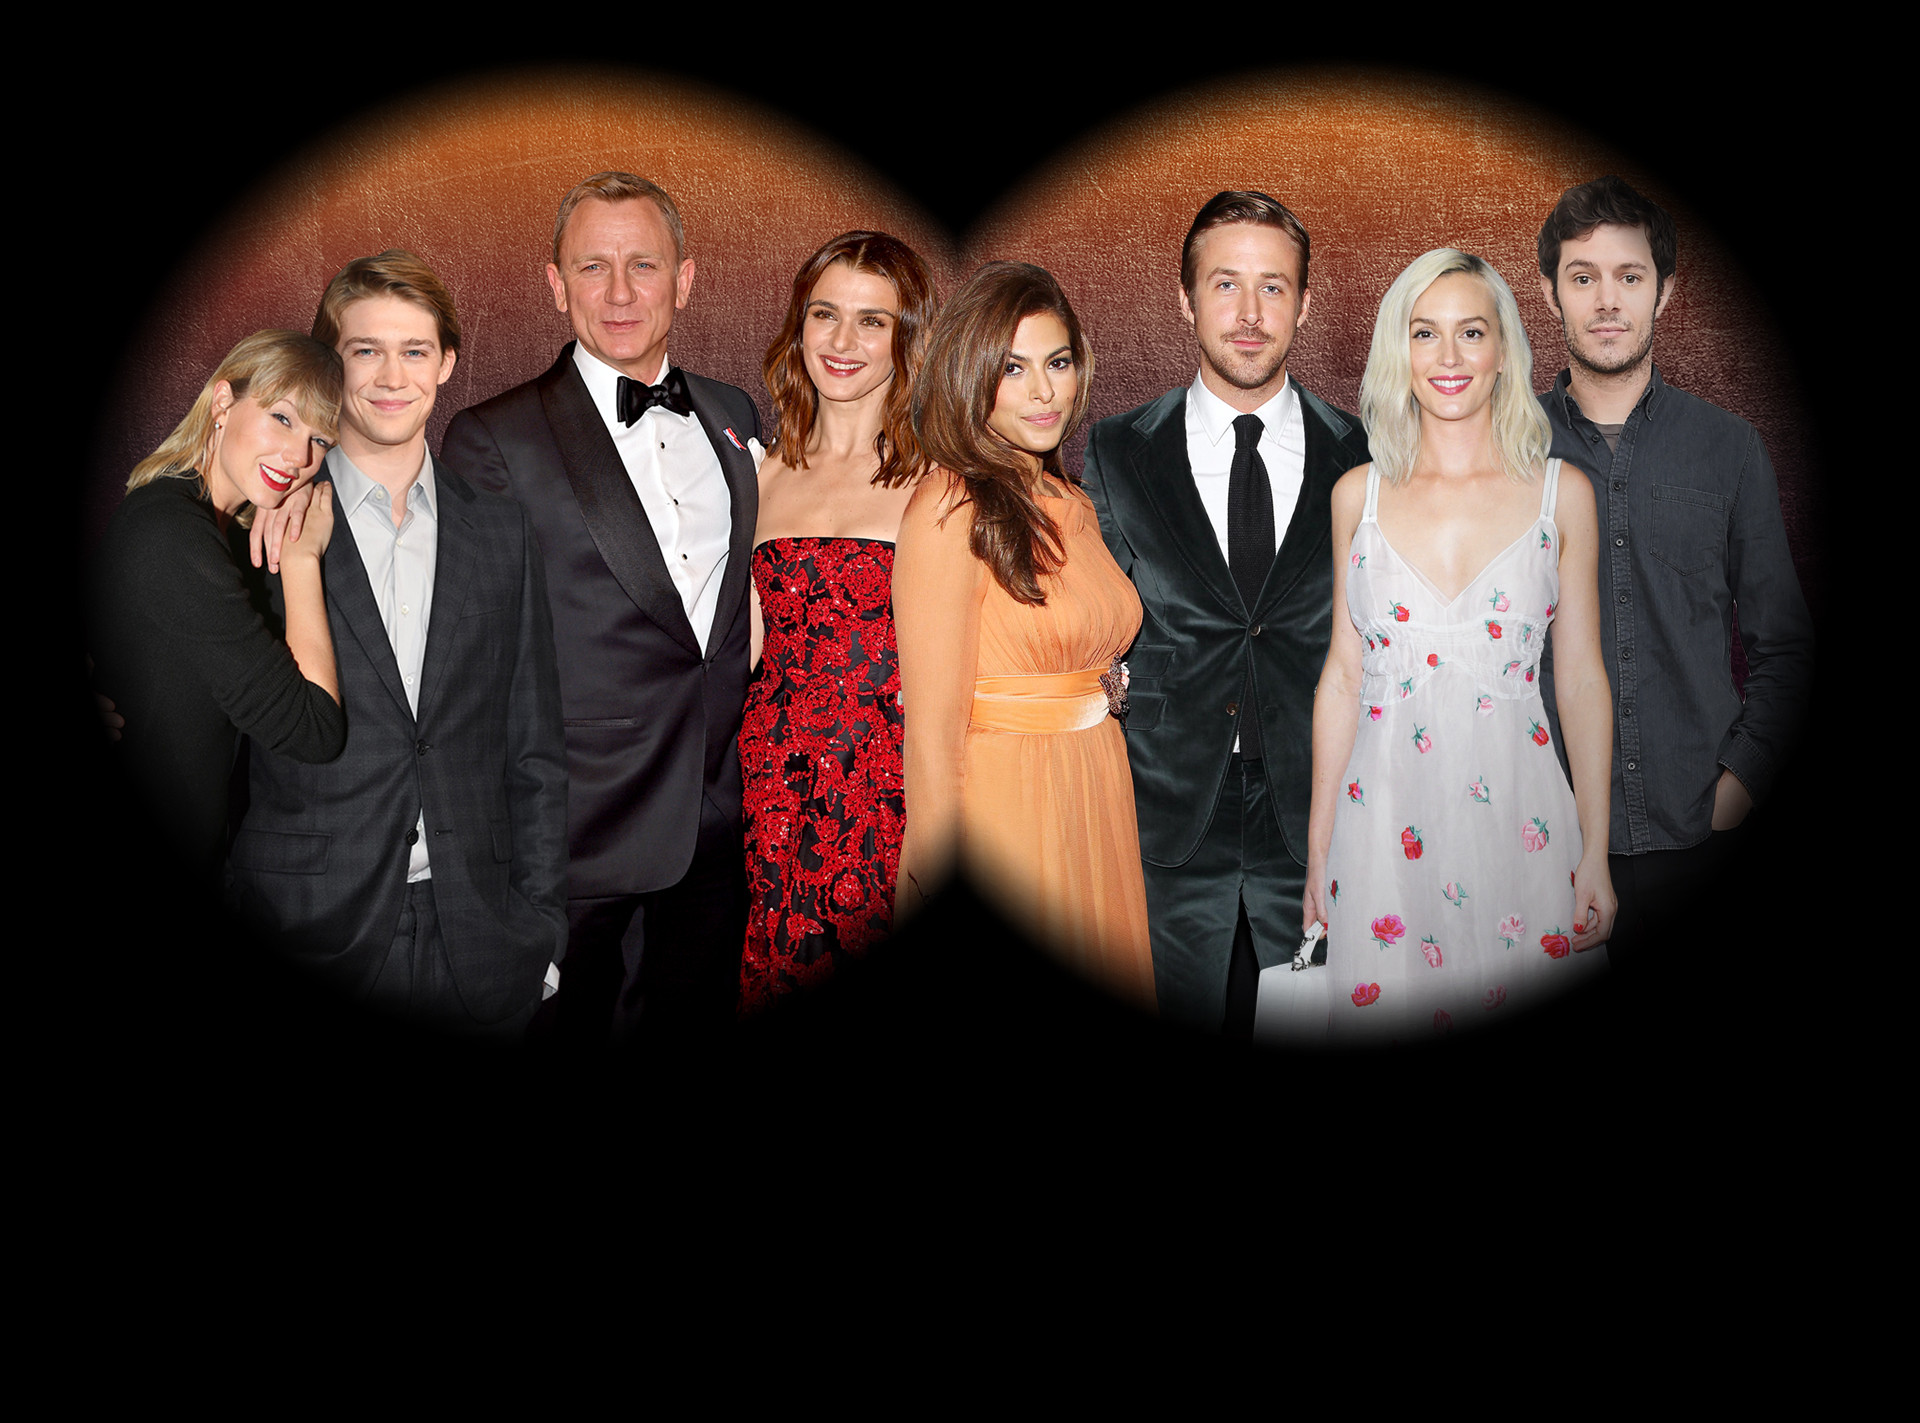 Under the Radar Couples, Eva Mendes, Ryan Gosling, Rachel Weisz, Daniel Craig, Leighton Meester, Adam Brody, Taylor Swift, Joe Alwyn